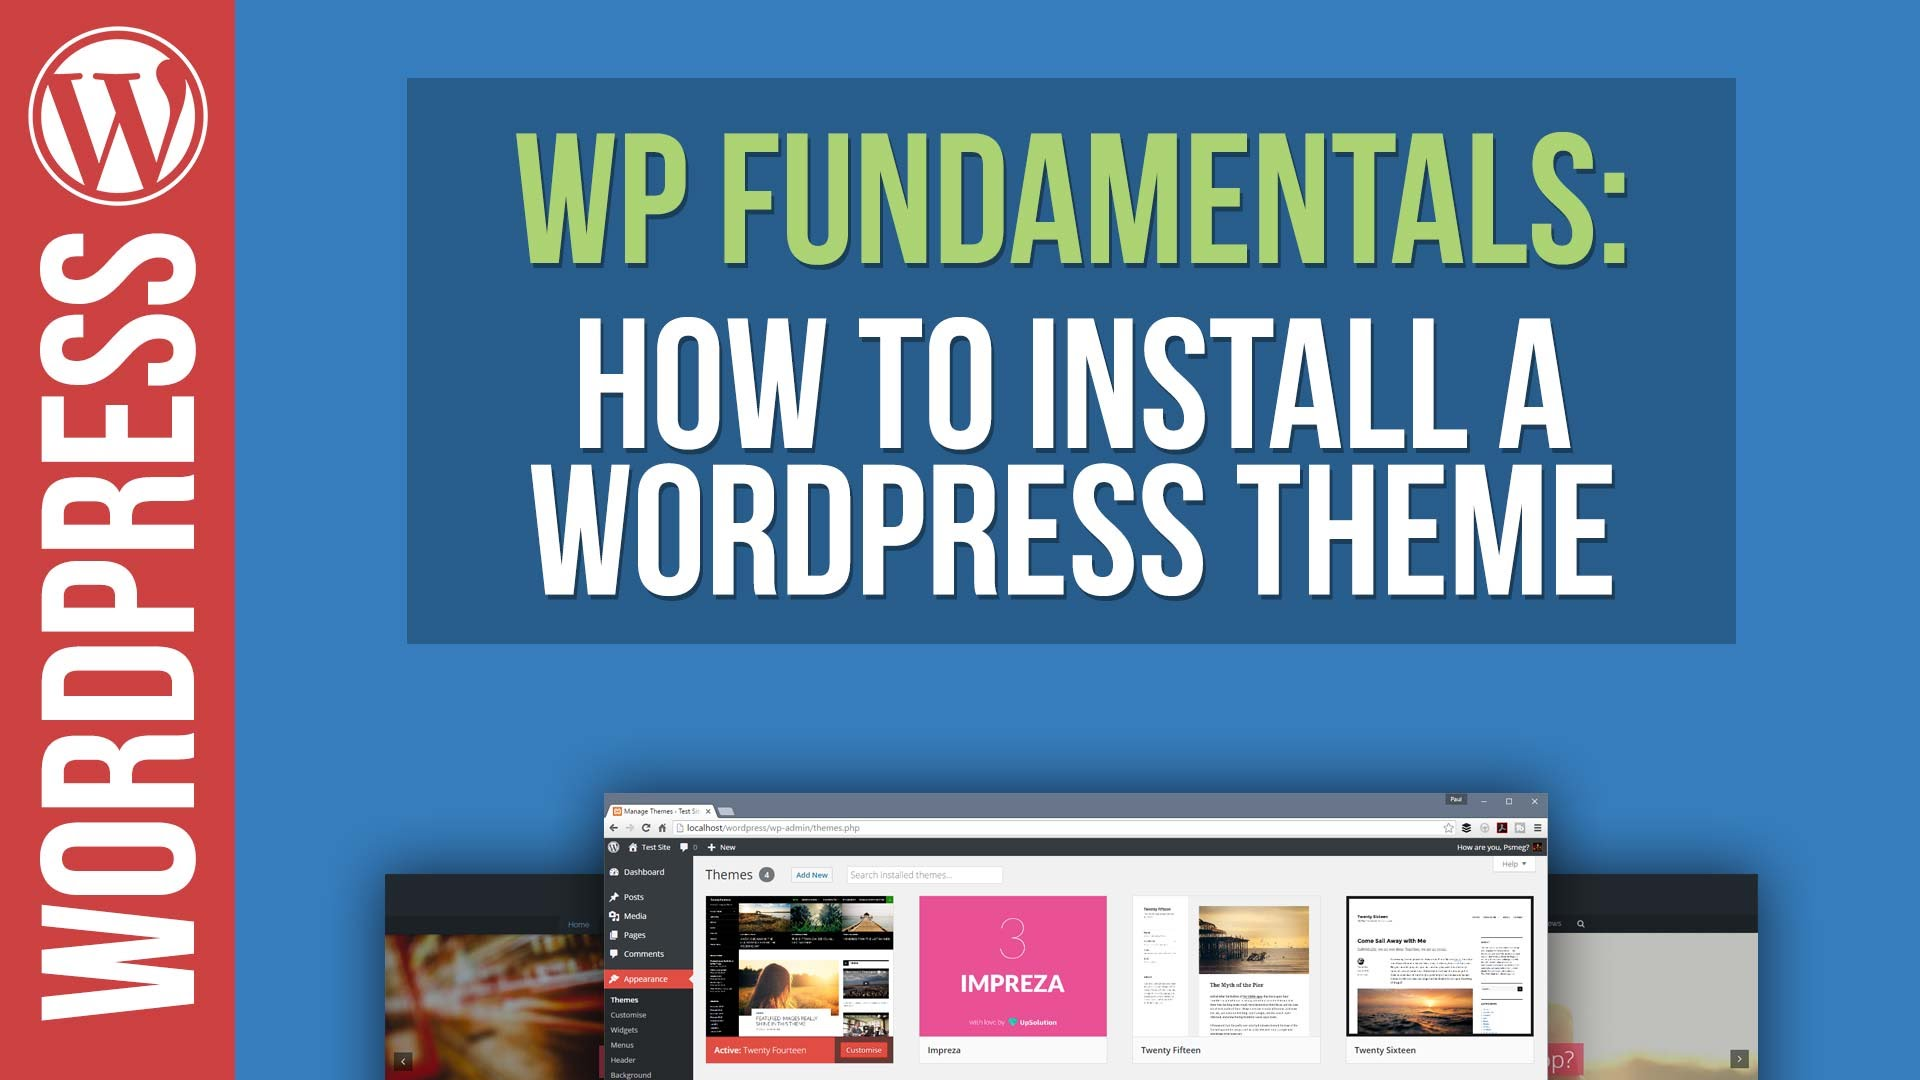 WordPress Fundamentals: How To Add A New Theme